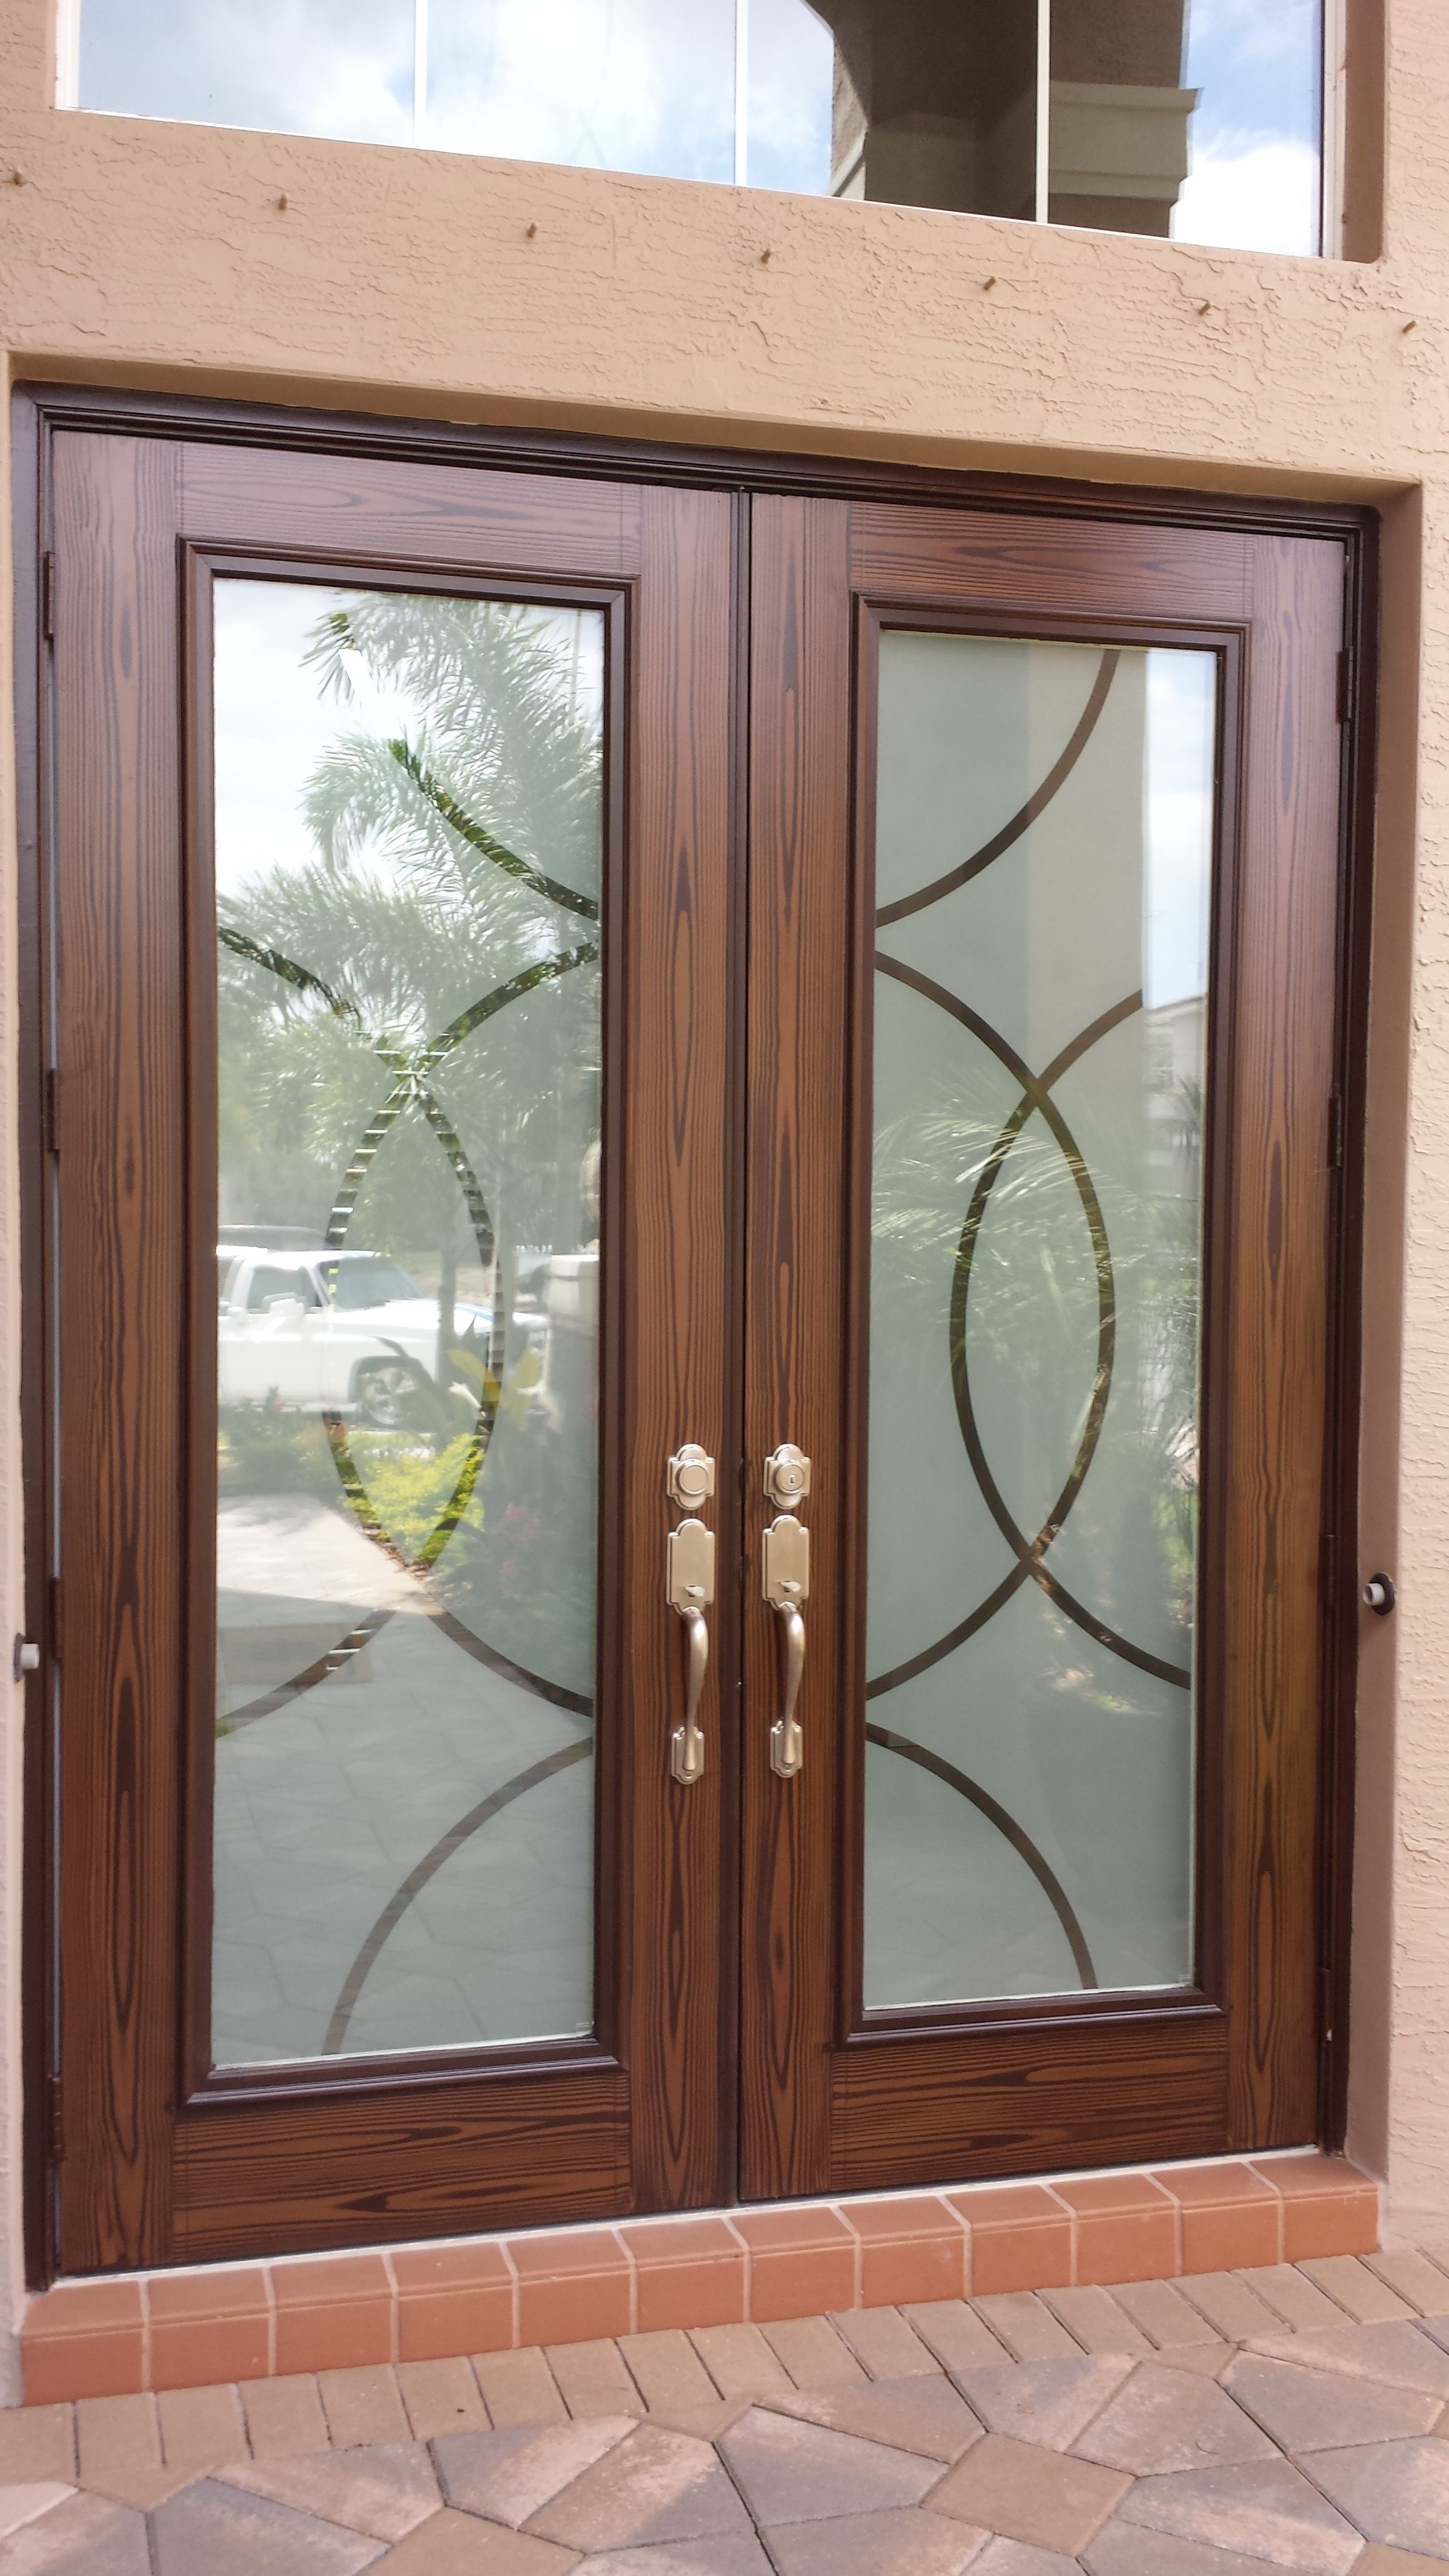 Feather River Doors 24 In X 80 In Privacy Smooth 1 Lite Primed Mdf Interior Door Slab Pn15012068e680 The Home Depot Glass Doors Interior Frosted Glass Interior Doors Doors Interior